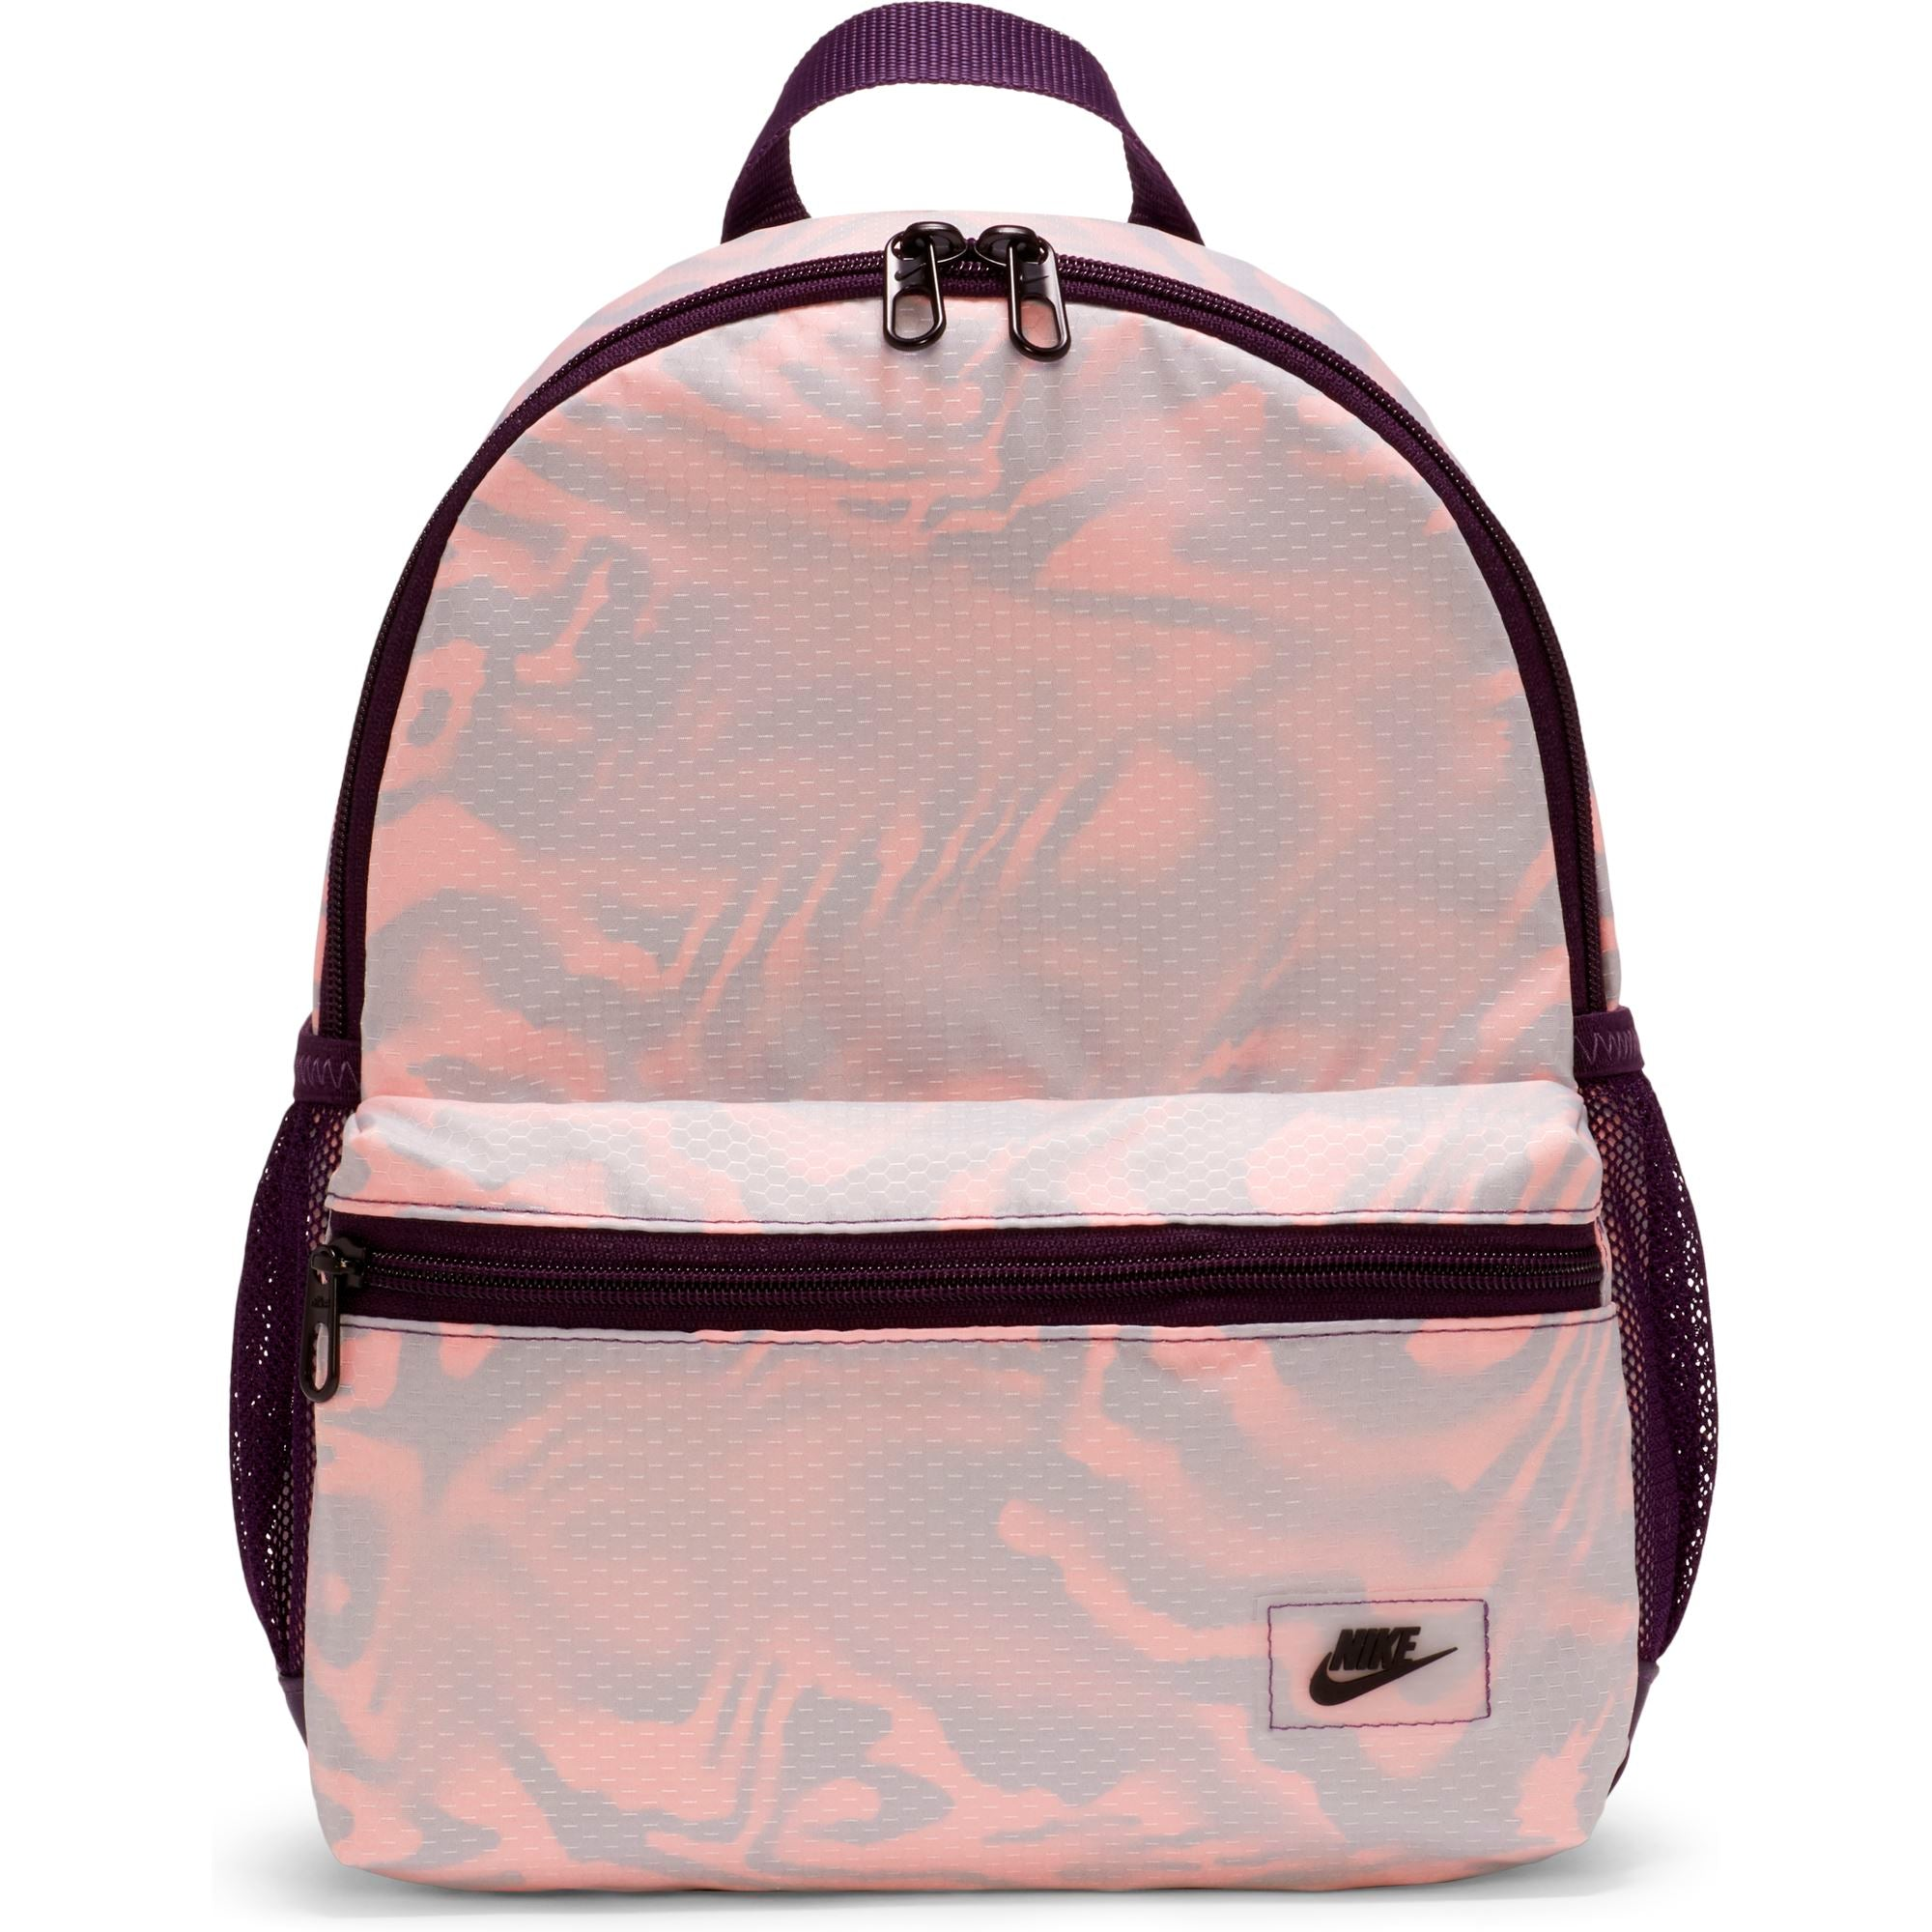 Nike Brasilia JDI Mini Backpack - Grand Purple/Bright Mango/Black SP-Accessories-Bags Nike